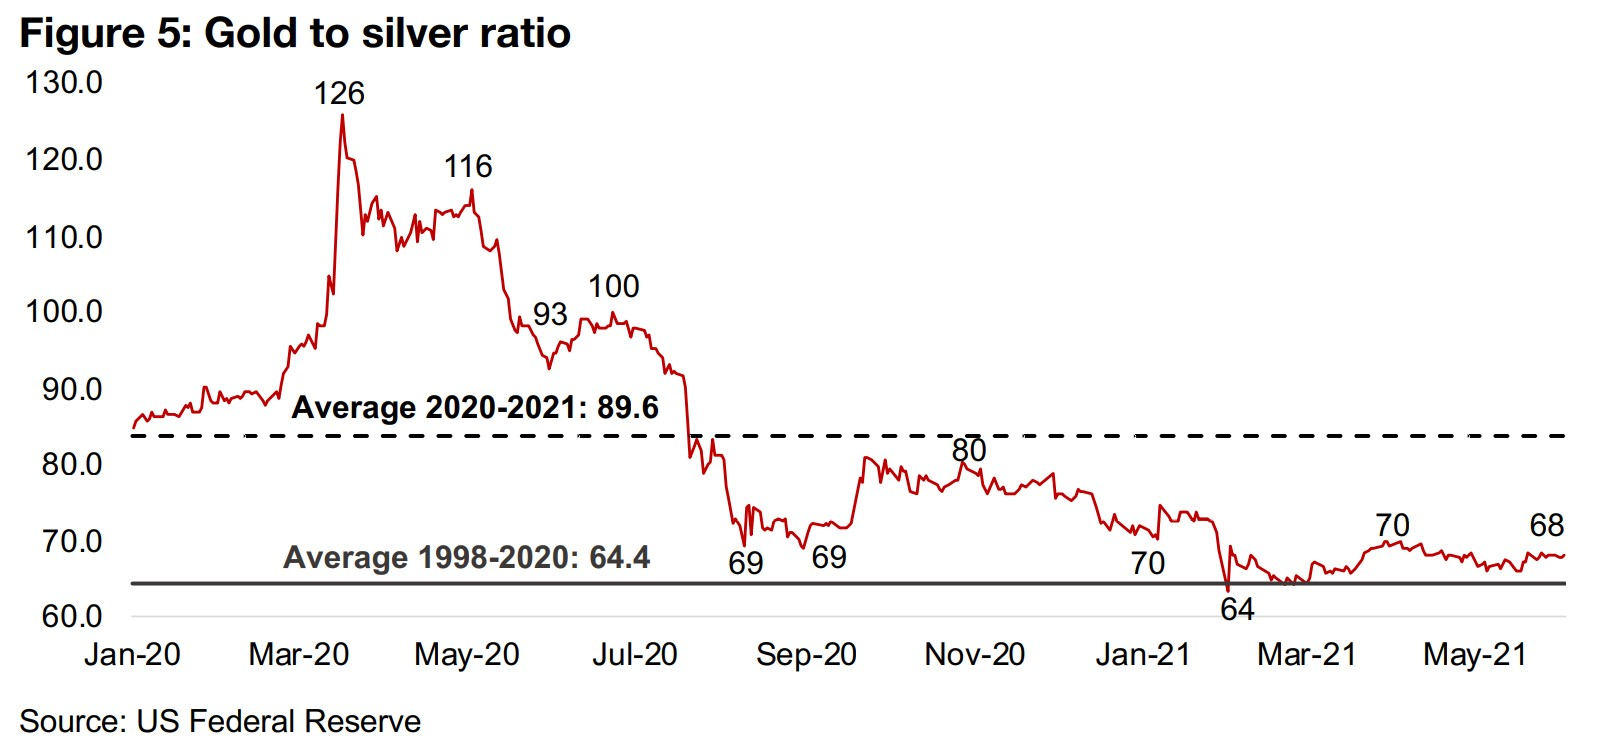 Gold and silver ratio settling down around mid-term average